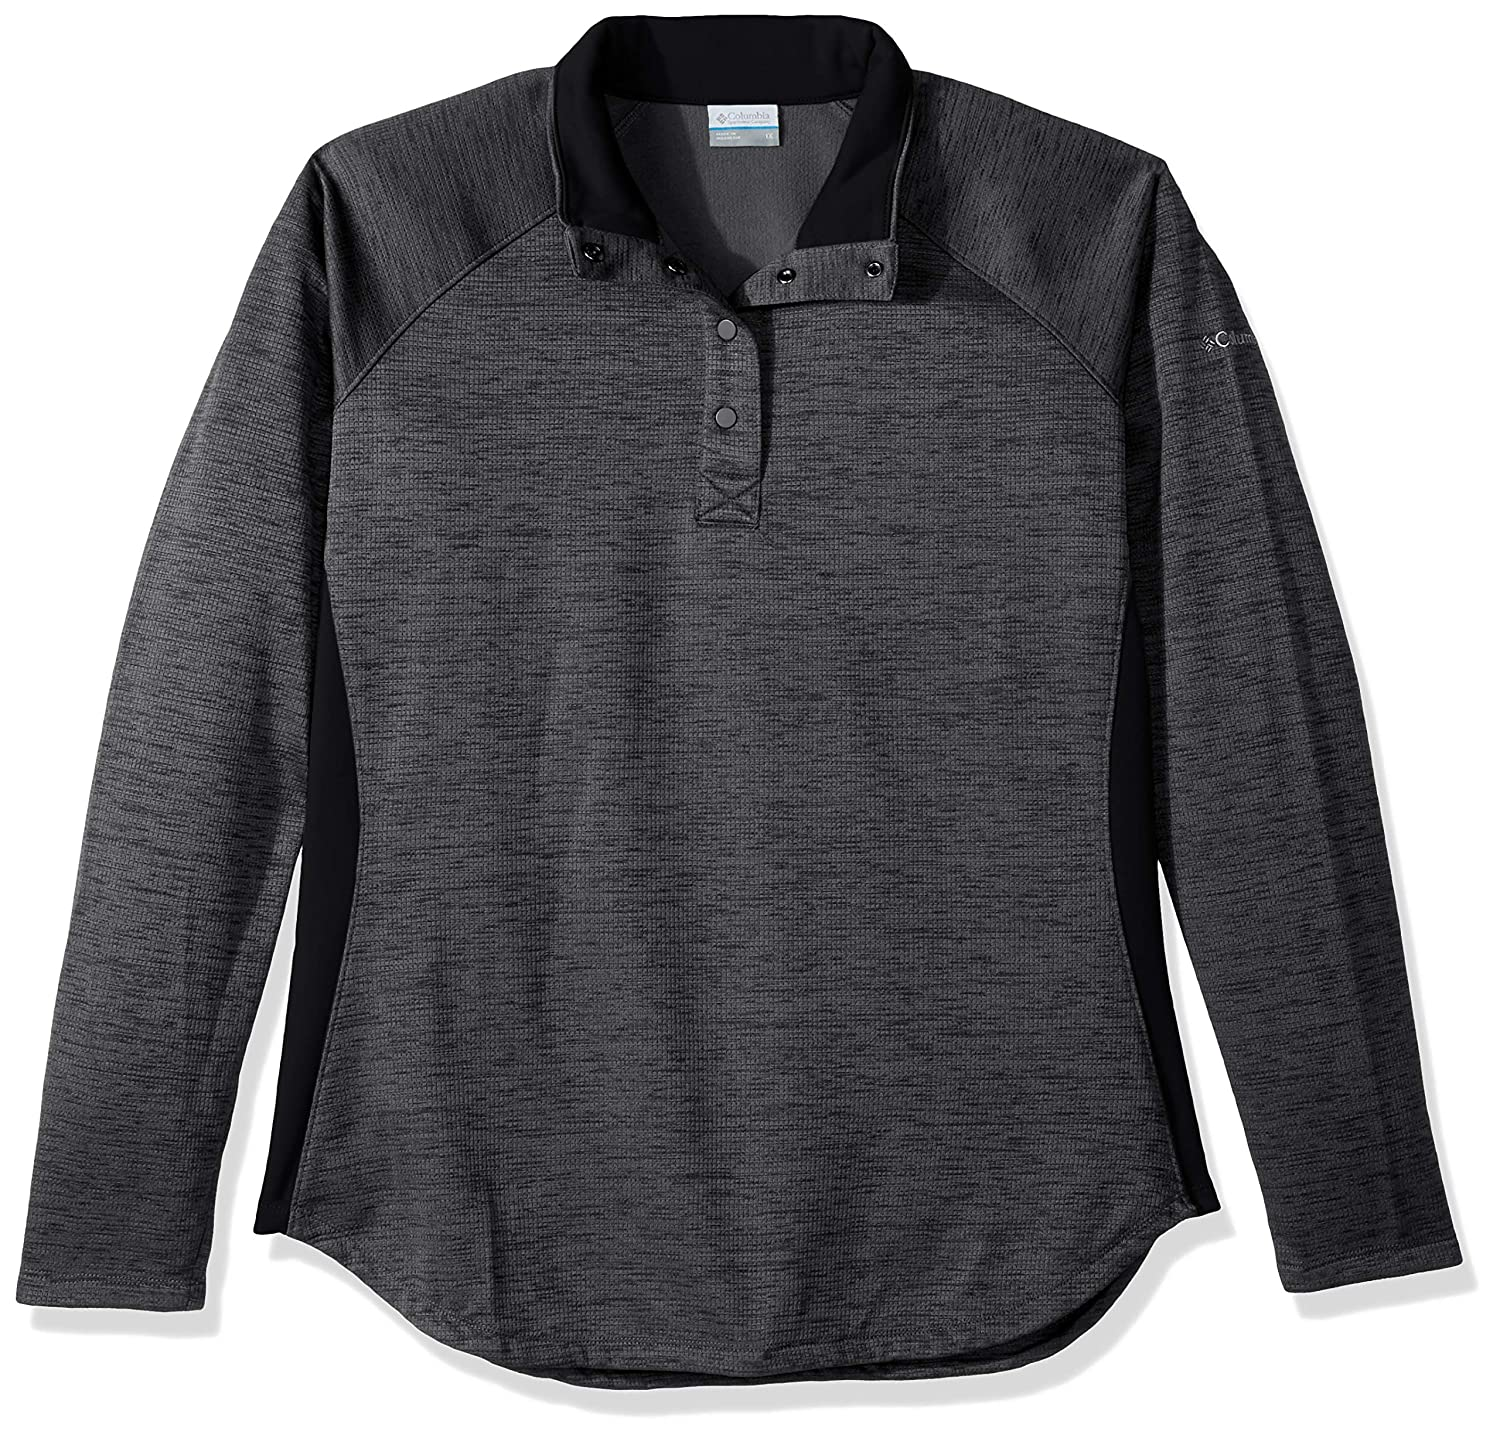 Columbia Optic Got It Iii Plus Size Pull-Over